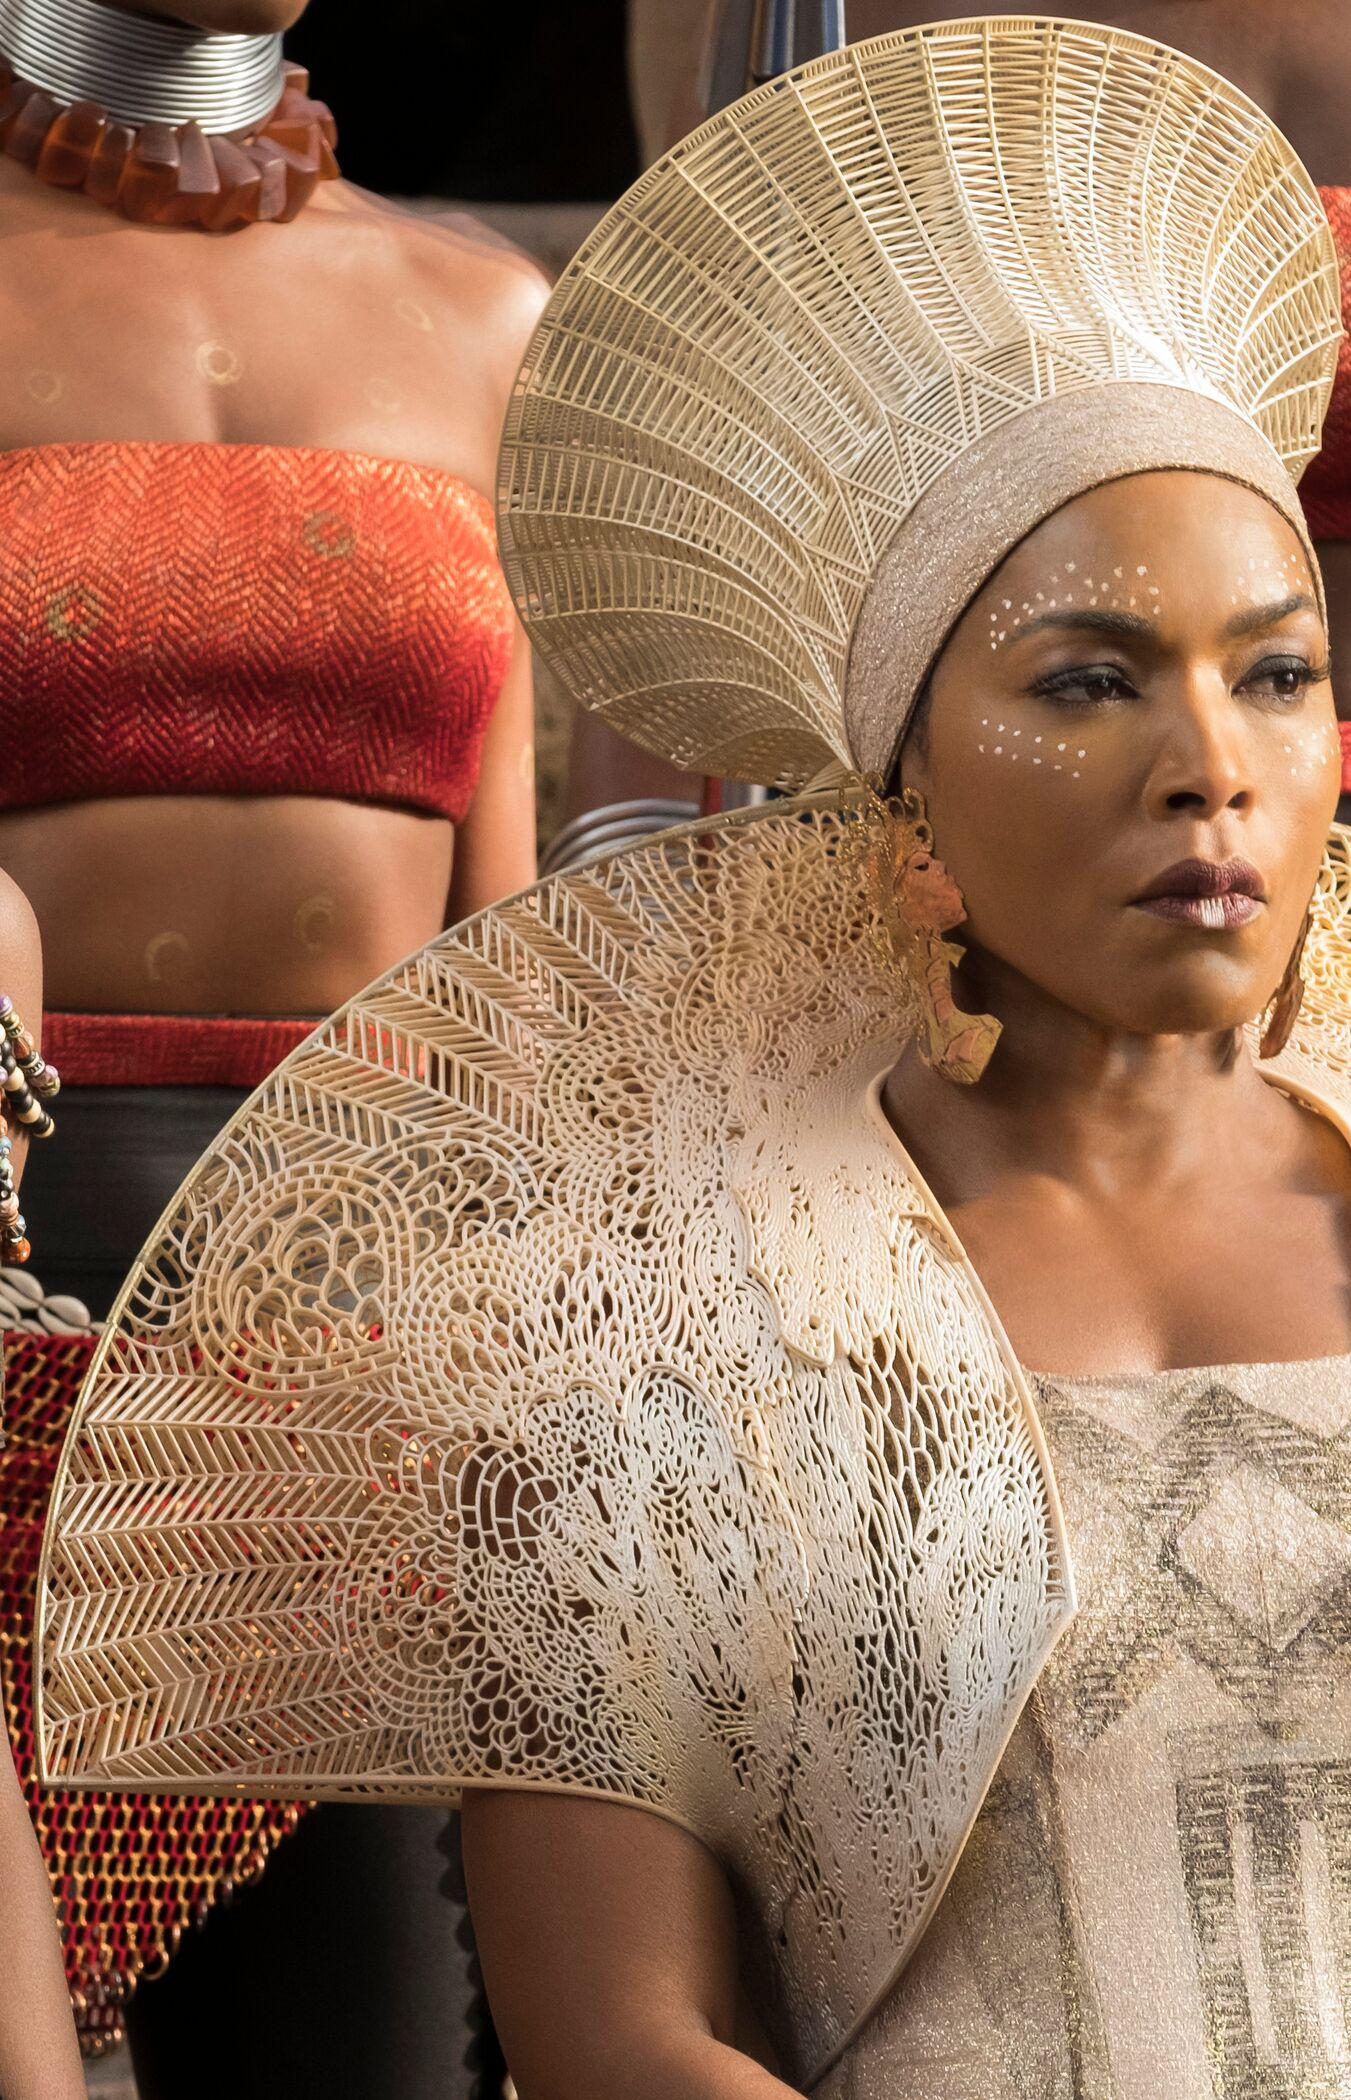 Materialise collaborated on the 3D printed crown and mantle worn by Angela Bassett as Queen Ramonda in Black Panther